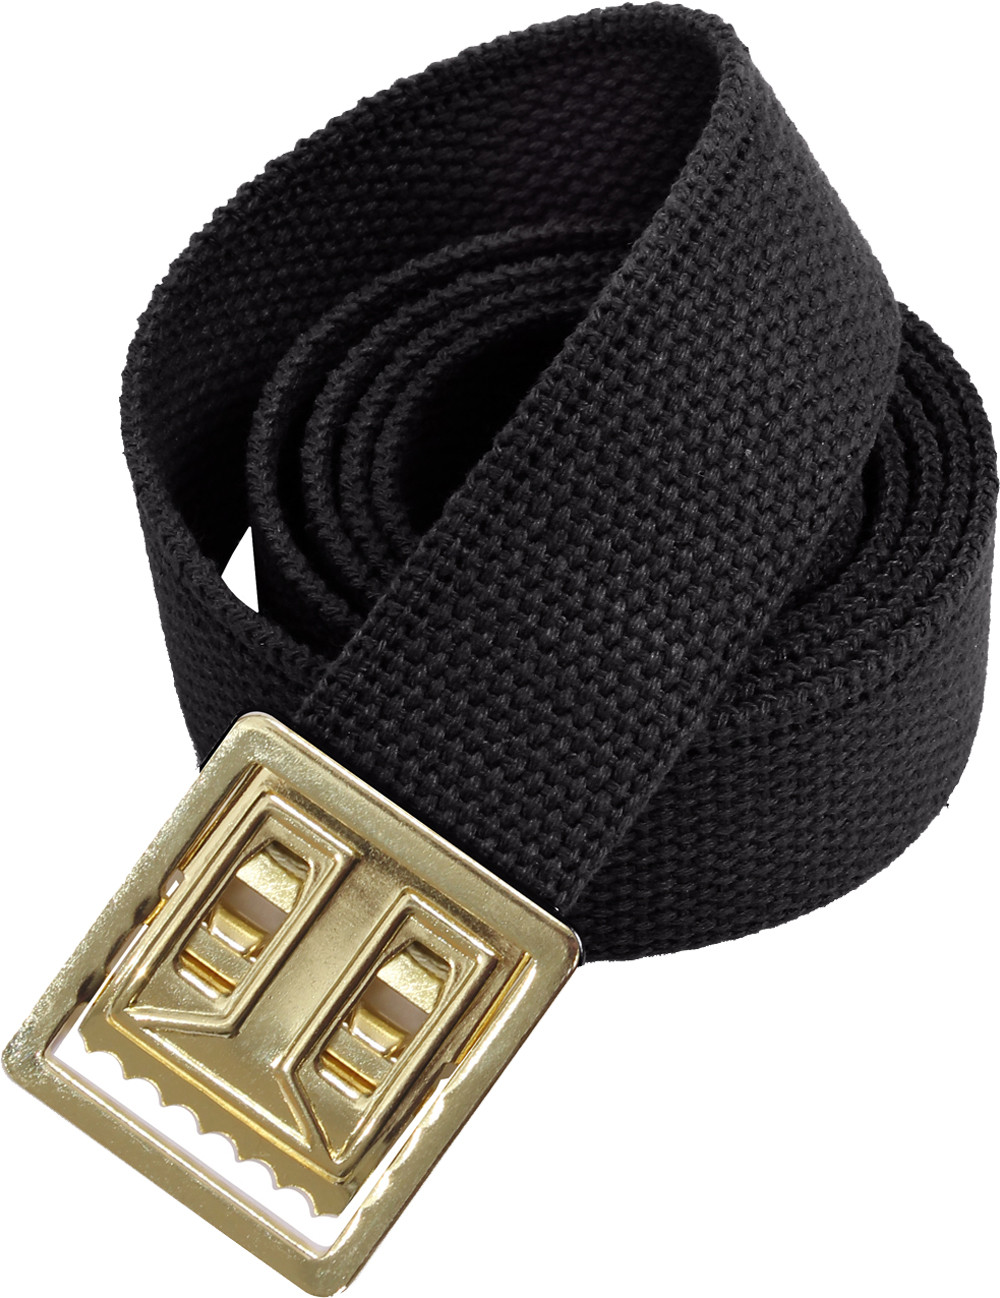 More Views. Black Military Cotton Web Belt   Brass Open Face Buckle ... 0b7d4f40464